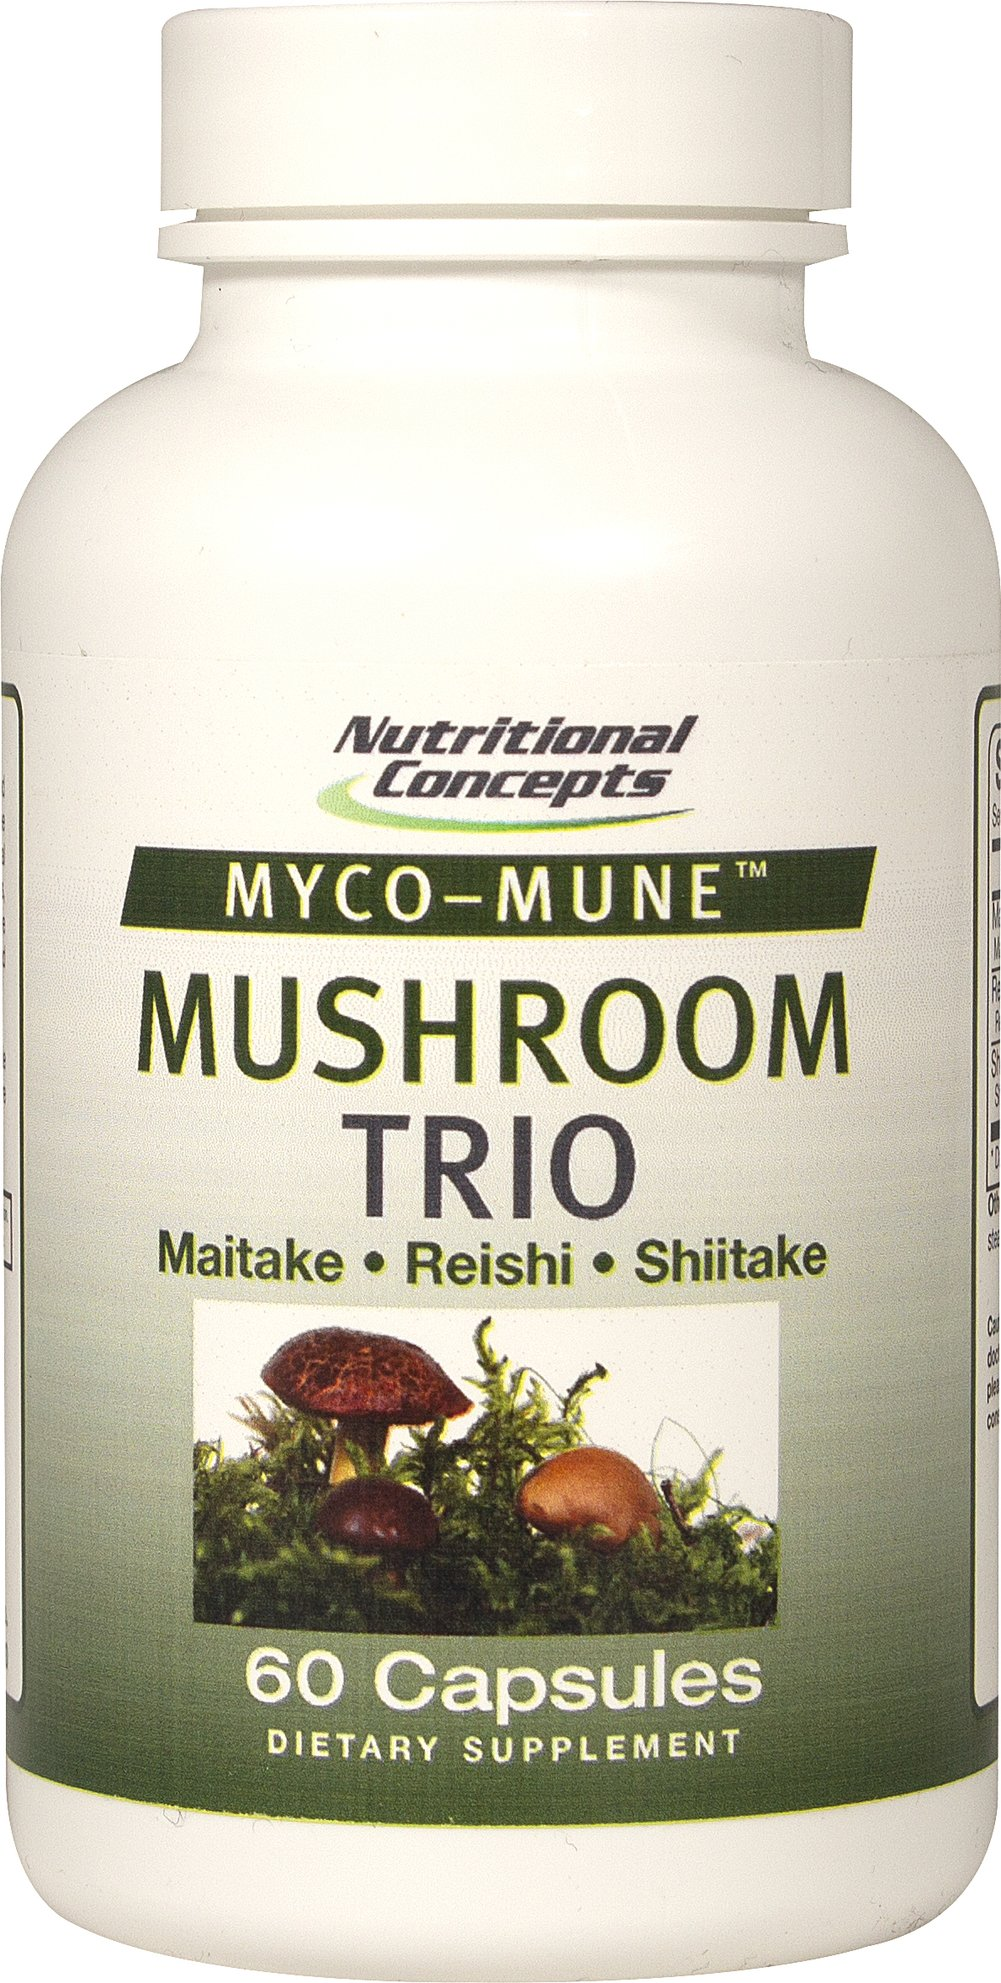 Myco-Mune™ Mushroom Trio Myco-Mune tm Mushroom Trio – is an optimized blend of the worlds finest mushrooms. Mushrooms are a leading source of the essential antioxidant selenium and ergothioneine. Eastern cultures have revered mushrooms health benefits for centuries.  60 Capsules